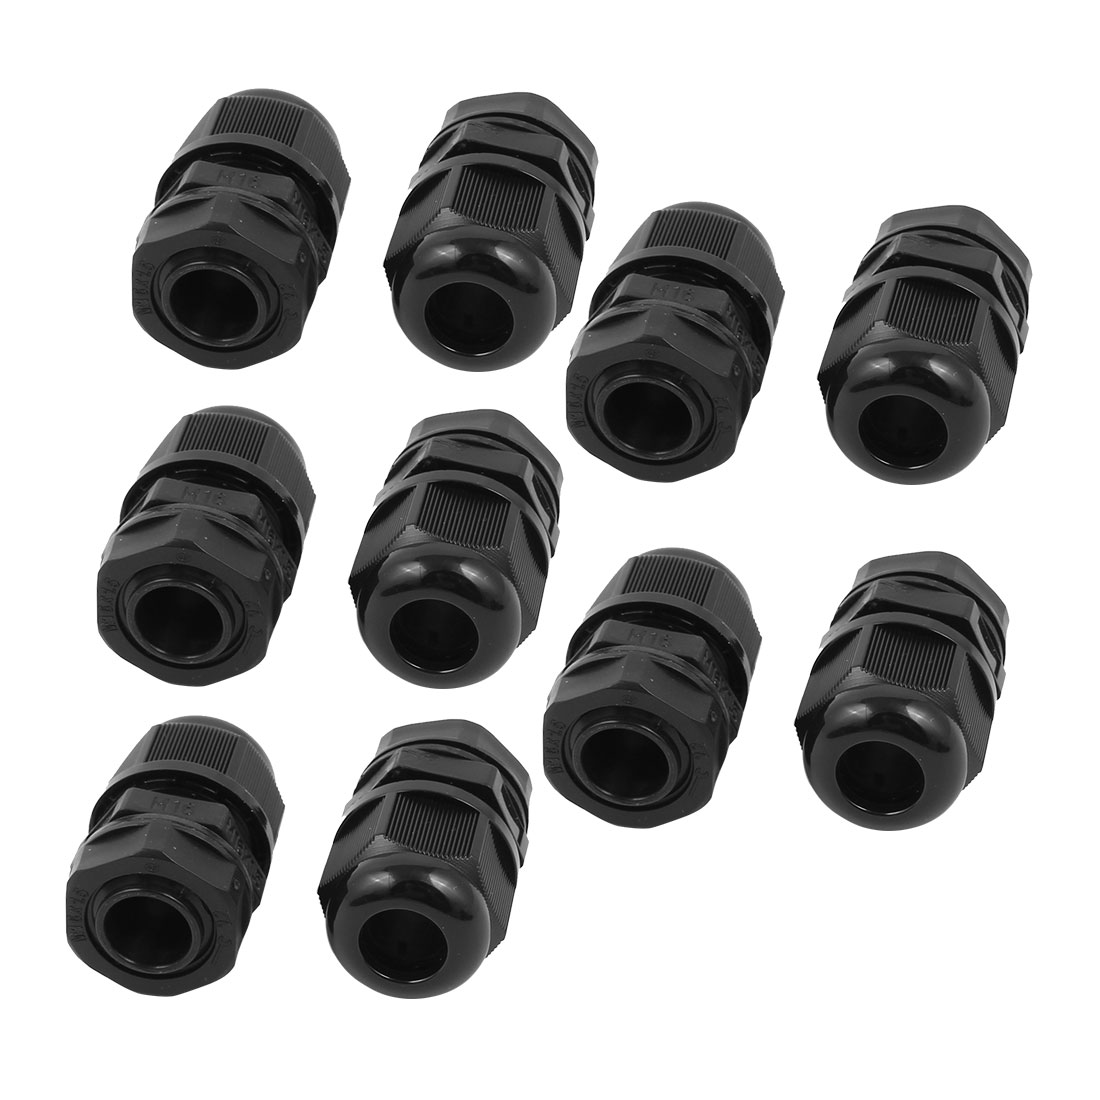 Black M16 Water Resistance Cable Gland Fixing Connector Joints Fastener 10 PCS